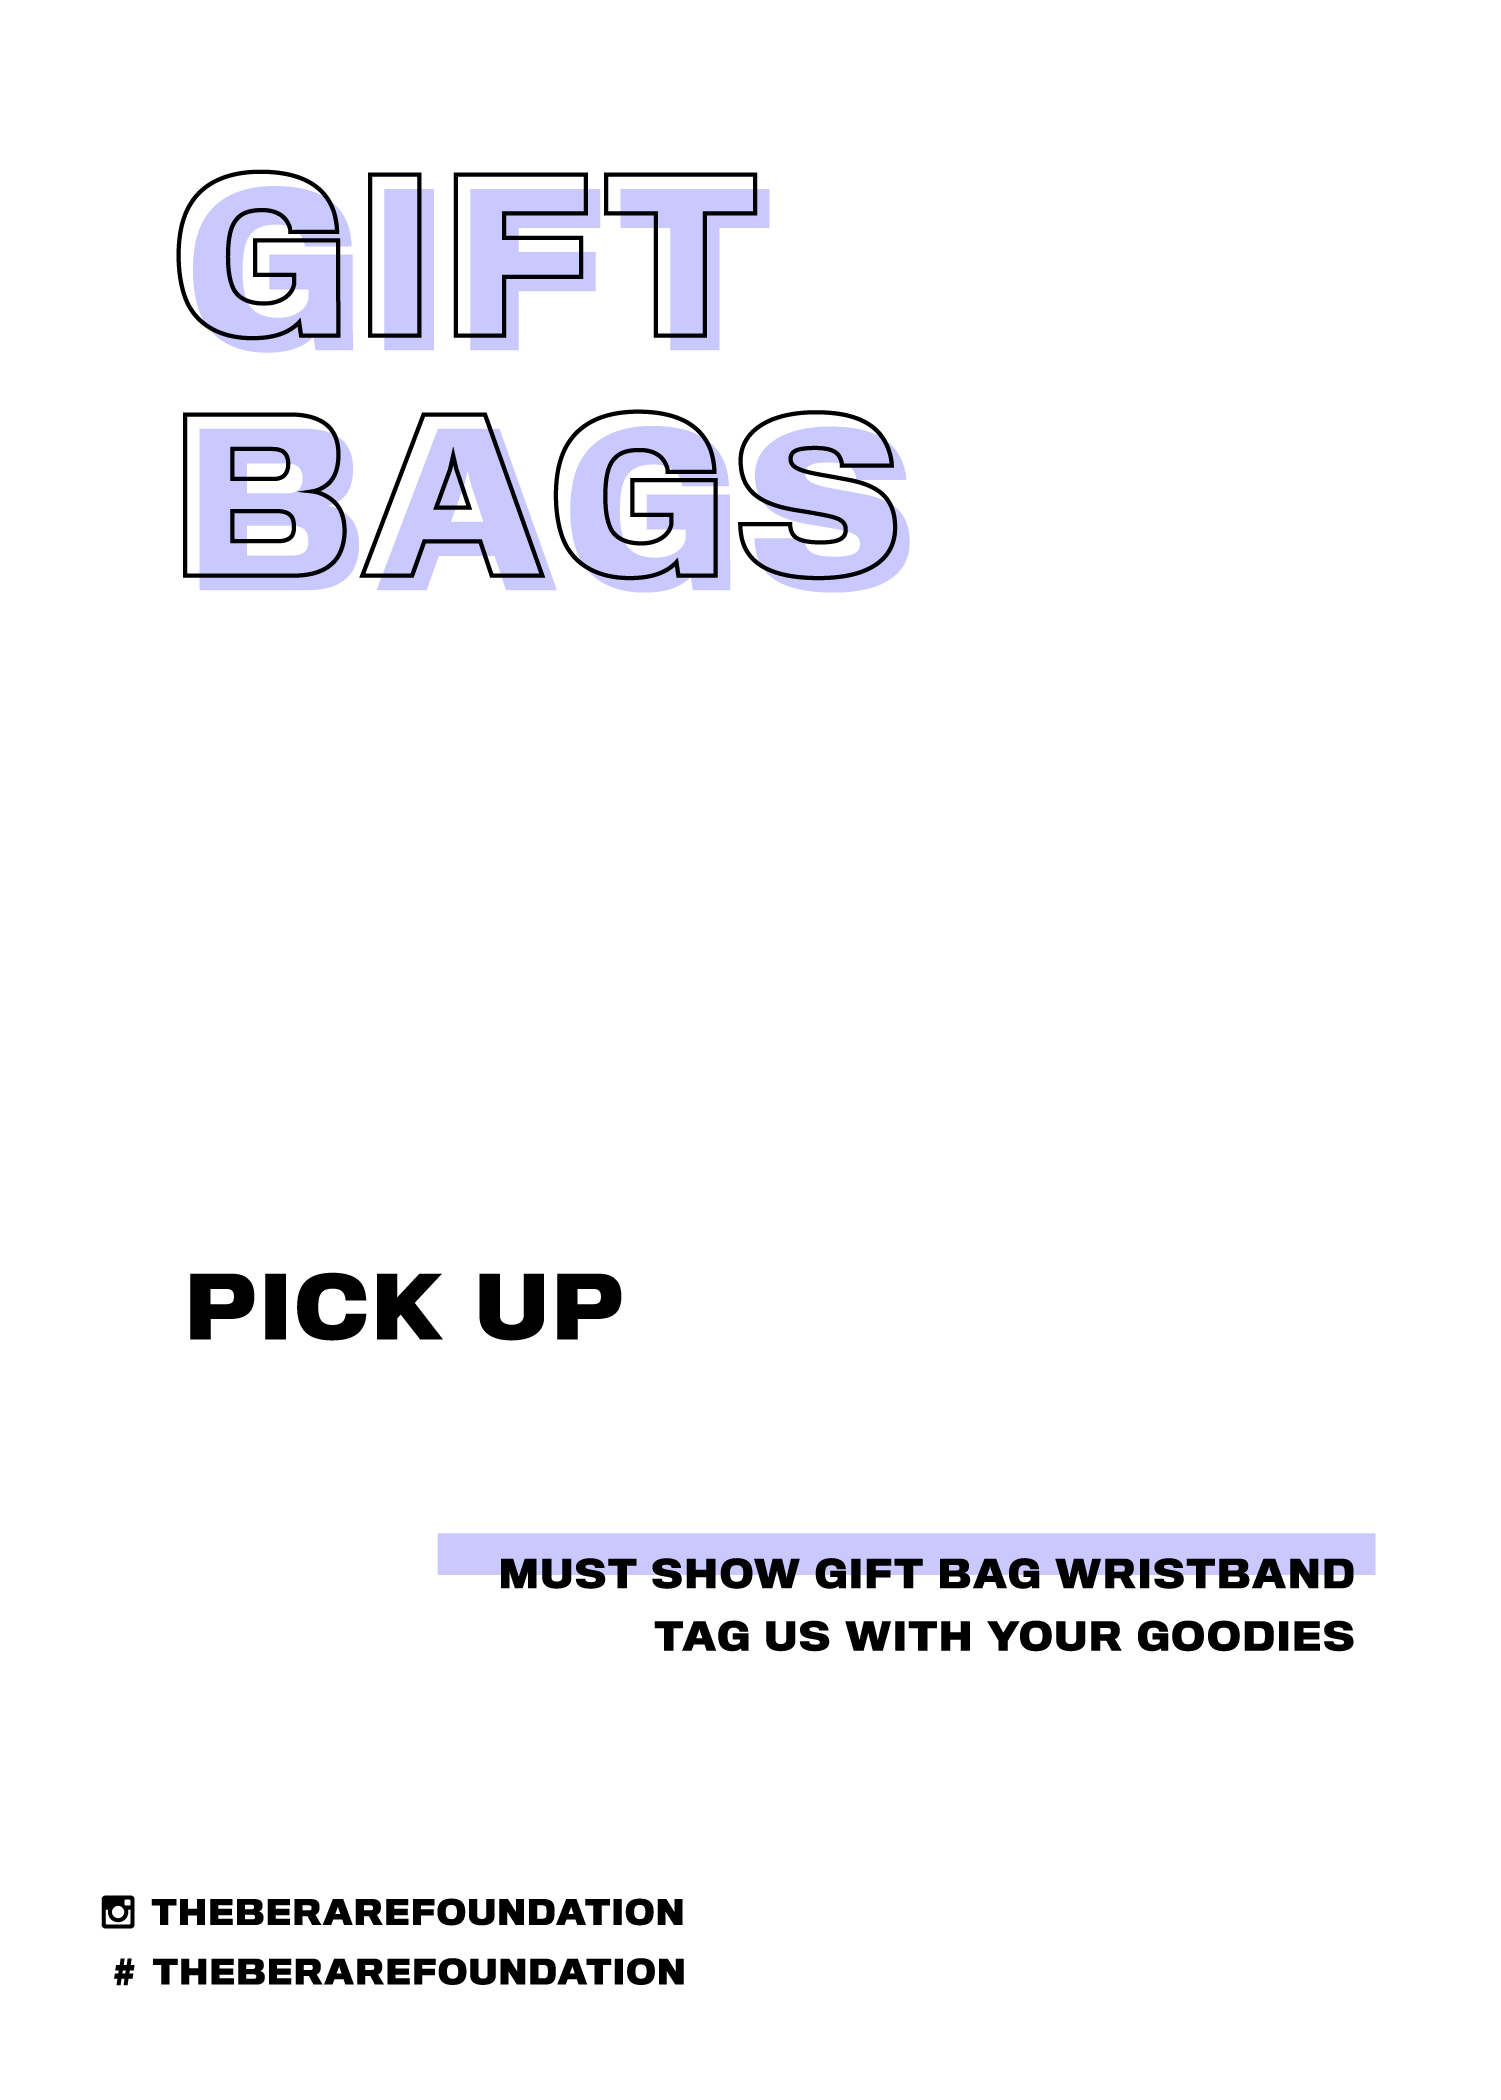 Signs_GIFT BAG - 5 x 7.png